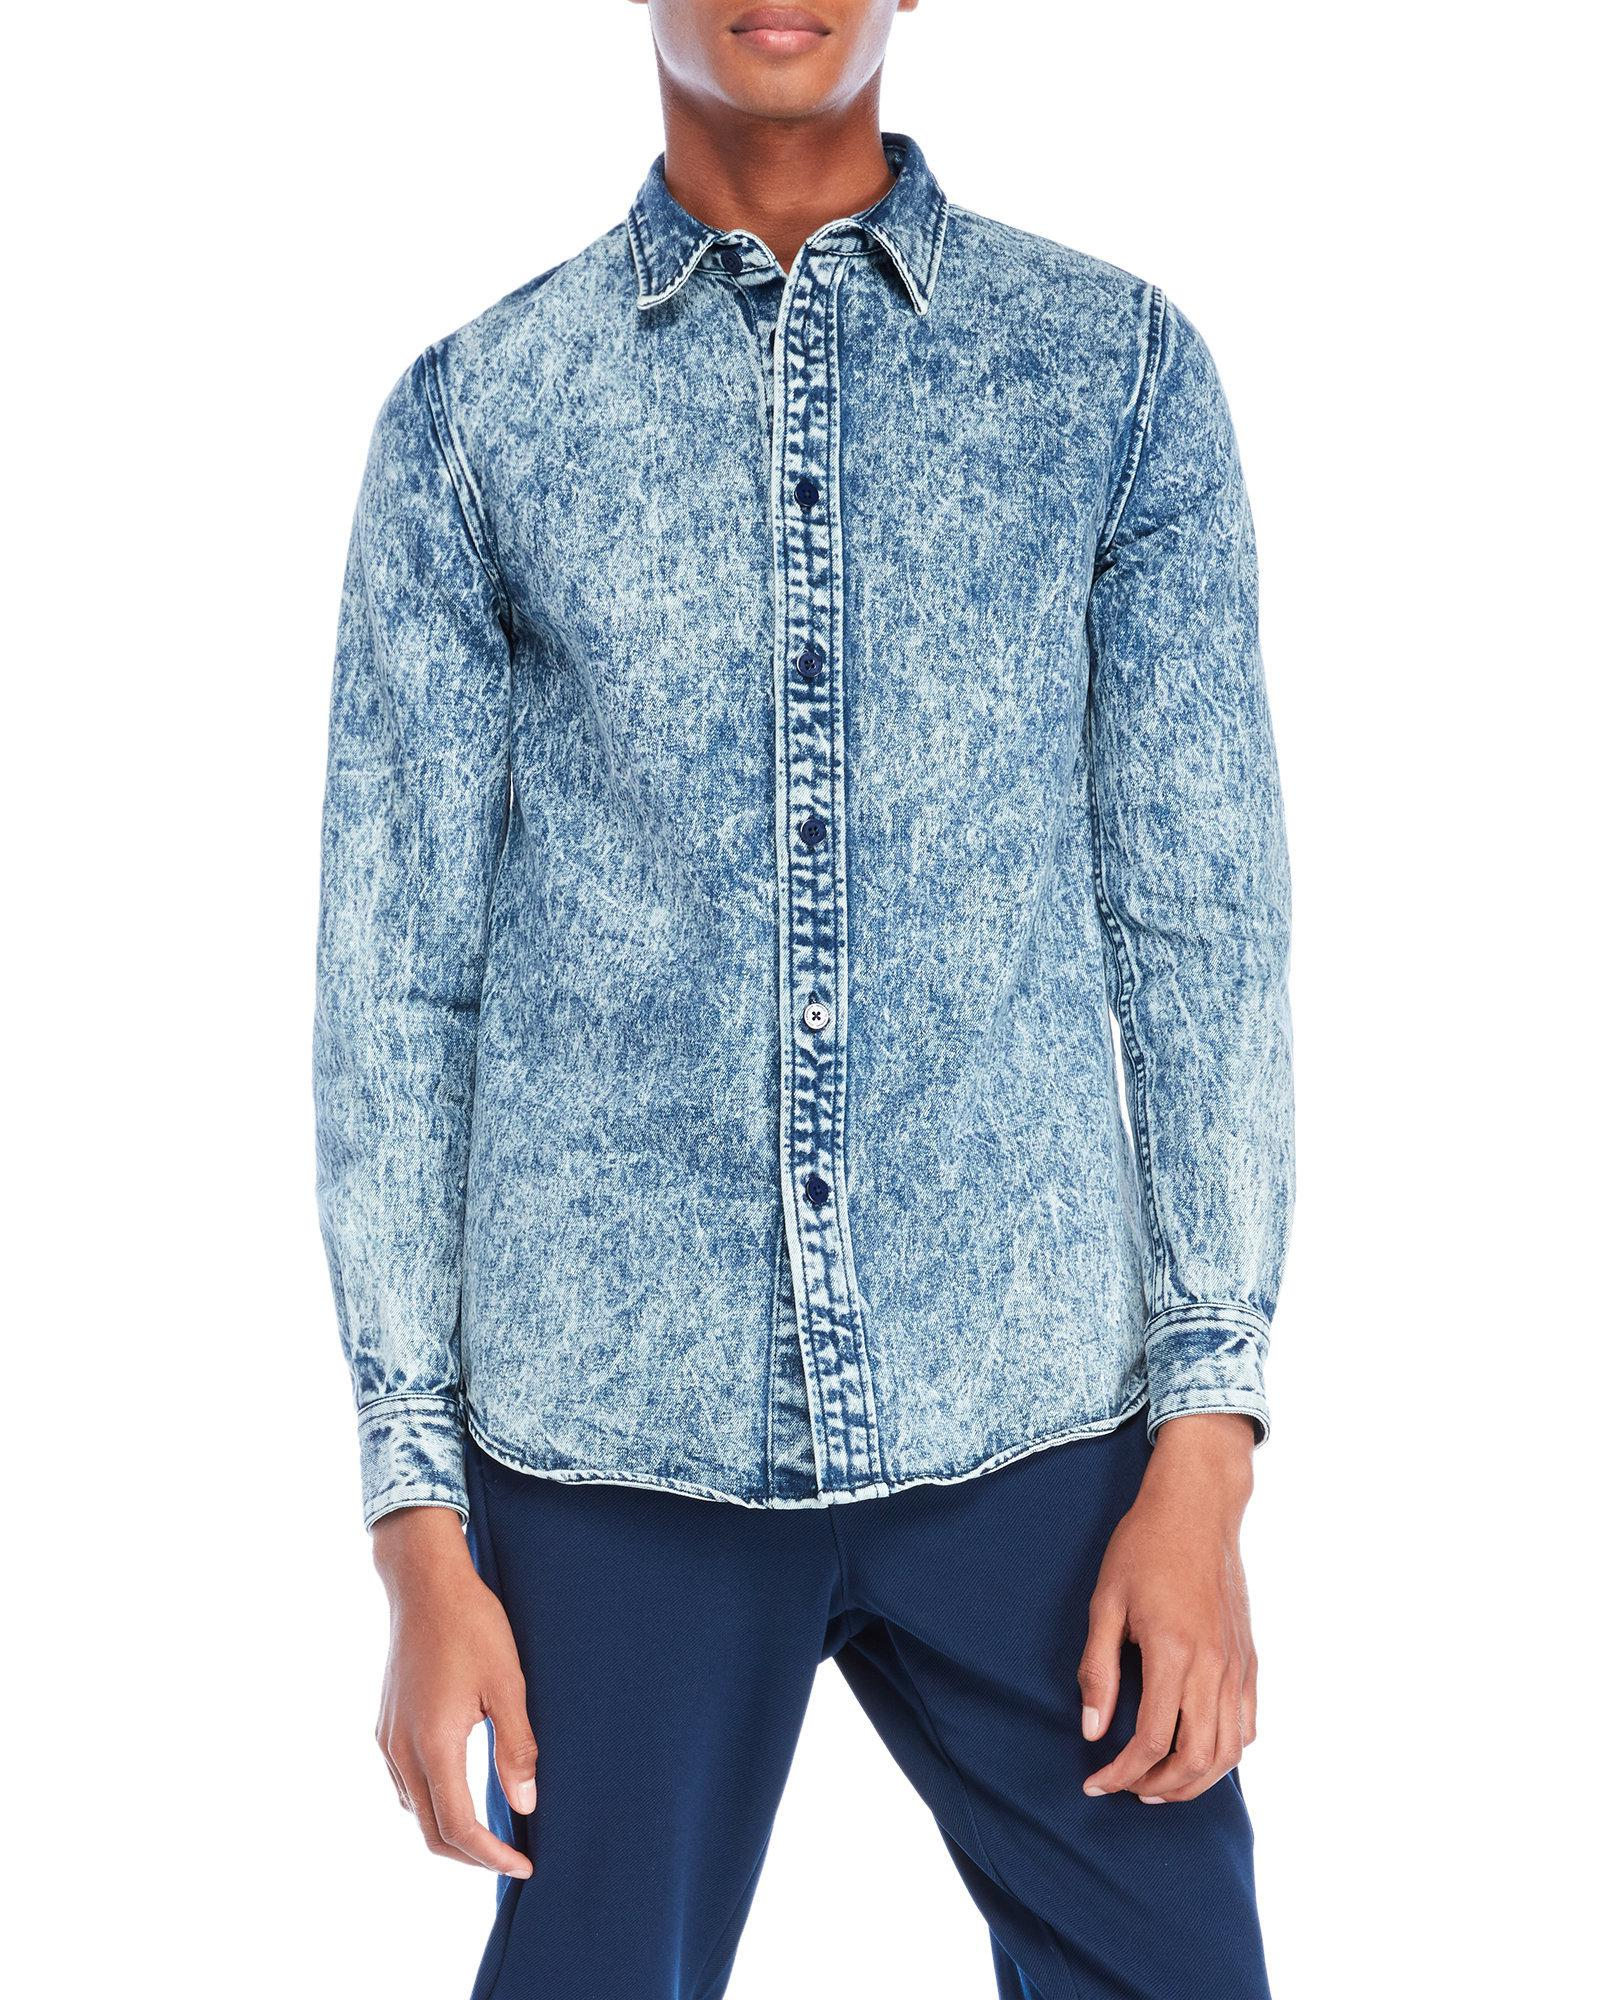 7ca36051461 Lyst - Han Kjobenhavn Everyday Acid Wash Denim Shirt in Blue for Men